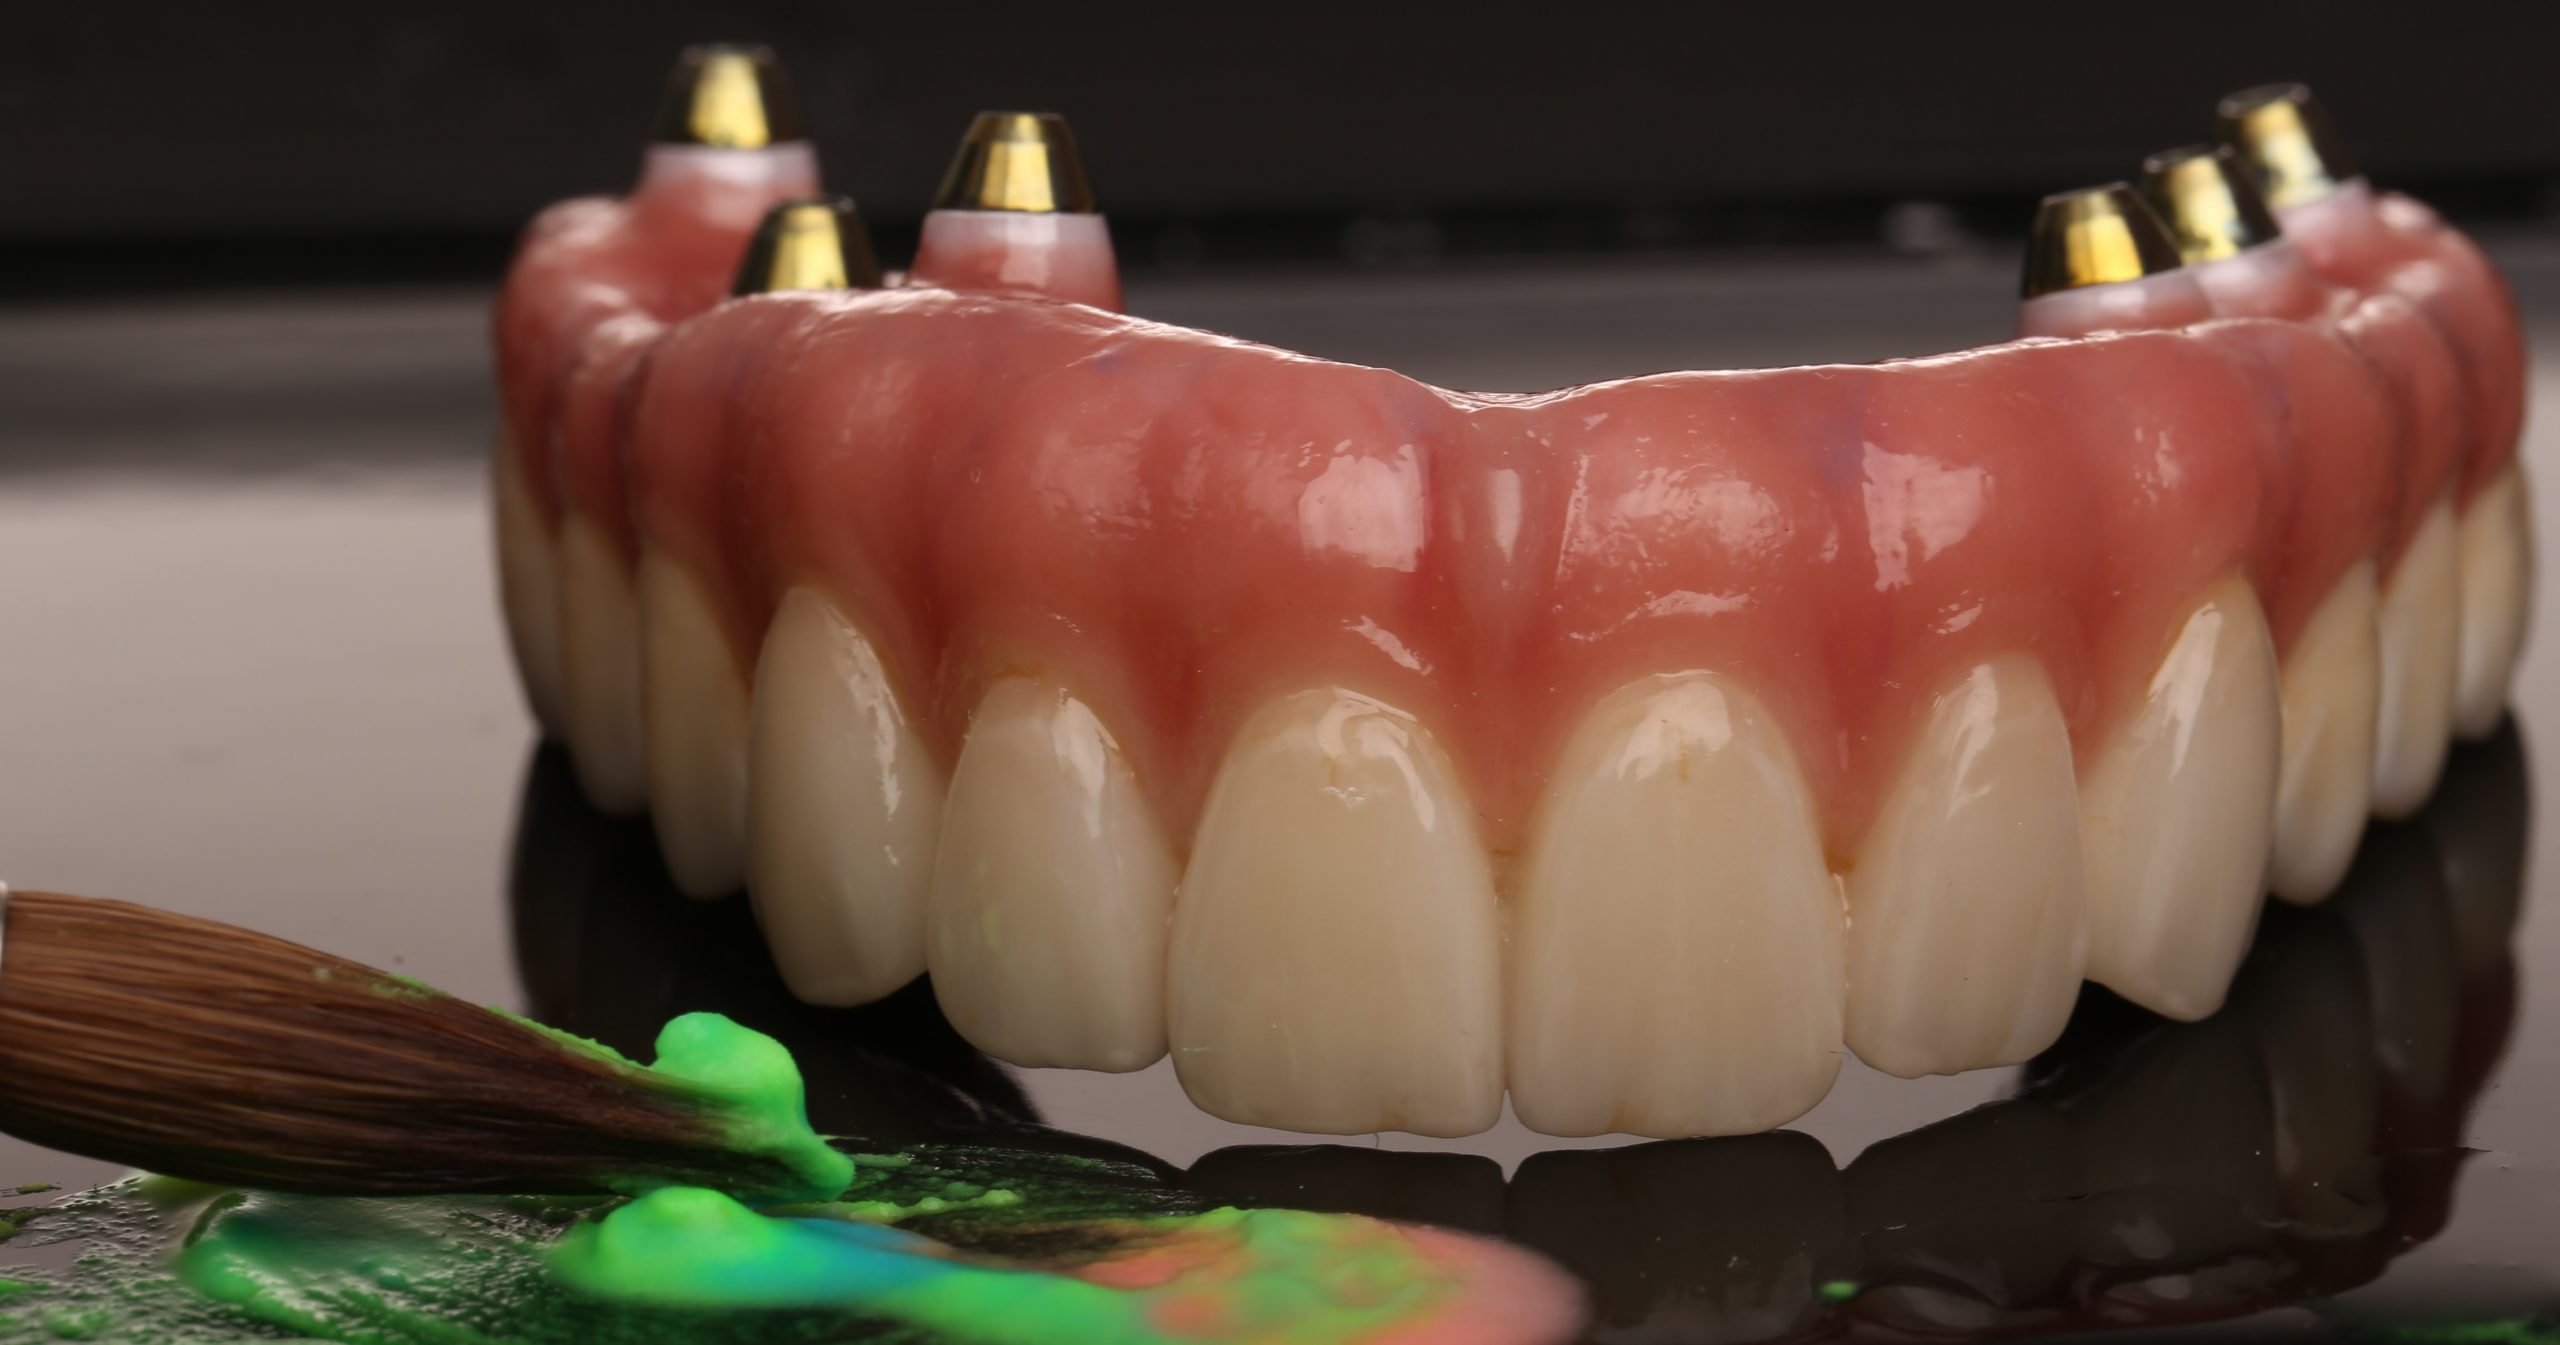 Dental implant All on 6 All on 4